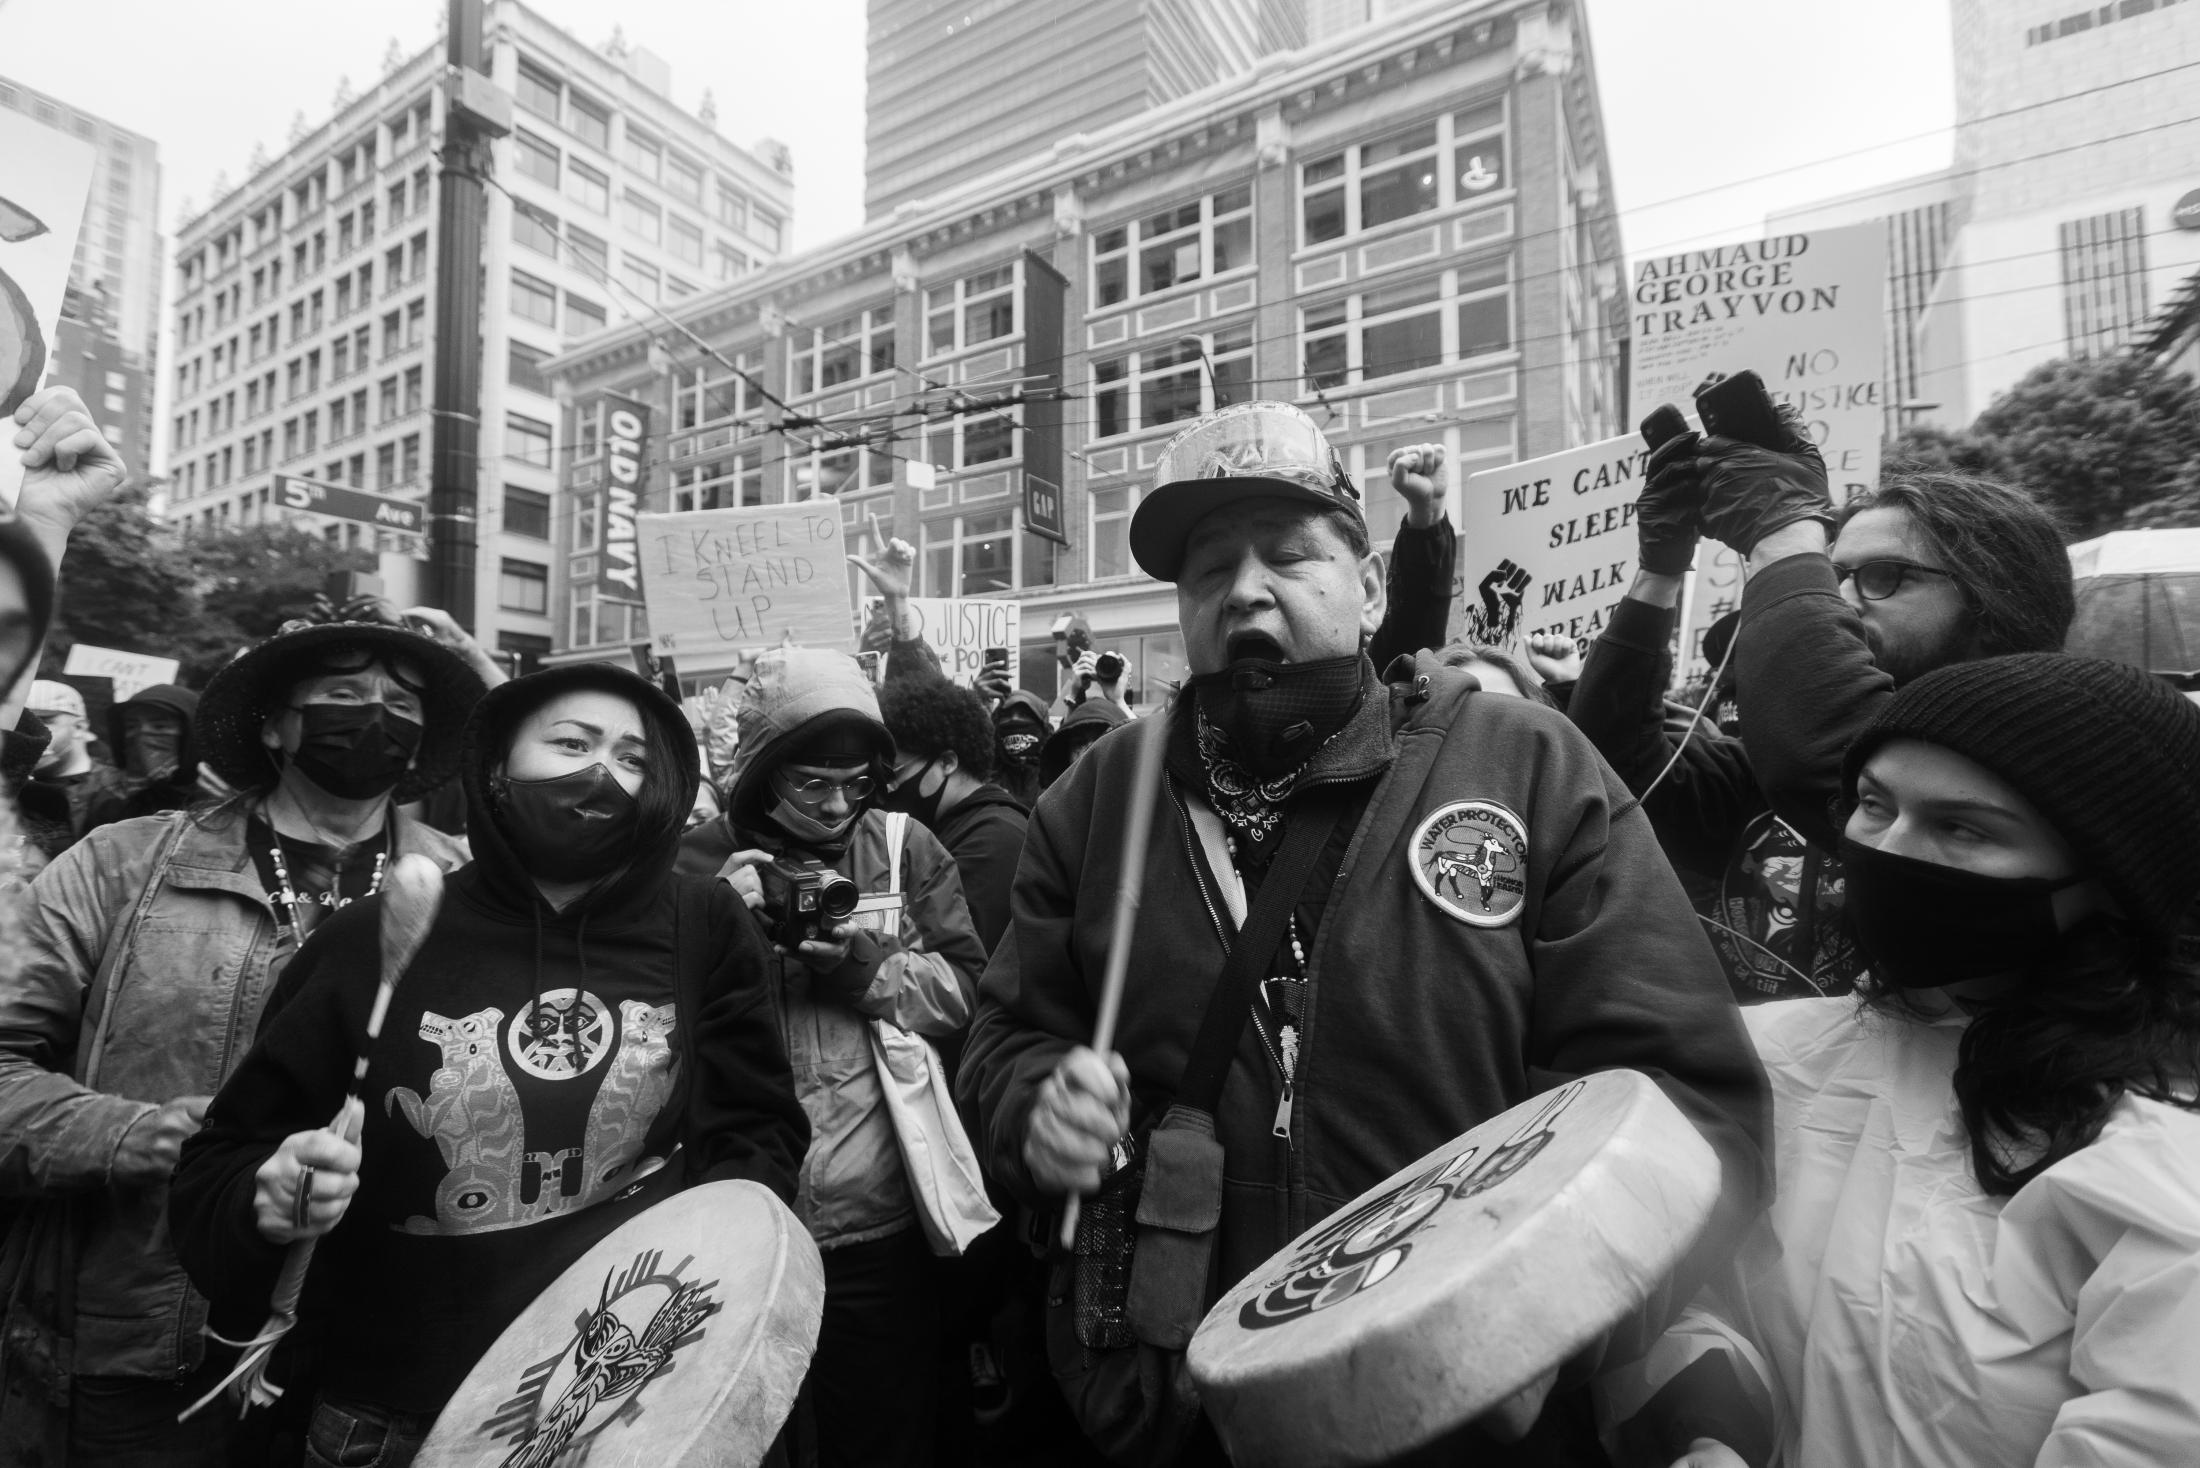 Pacific Northwest First Nation members protesting in the downtown area of Seattle, Washington.